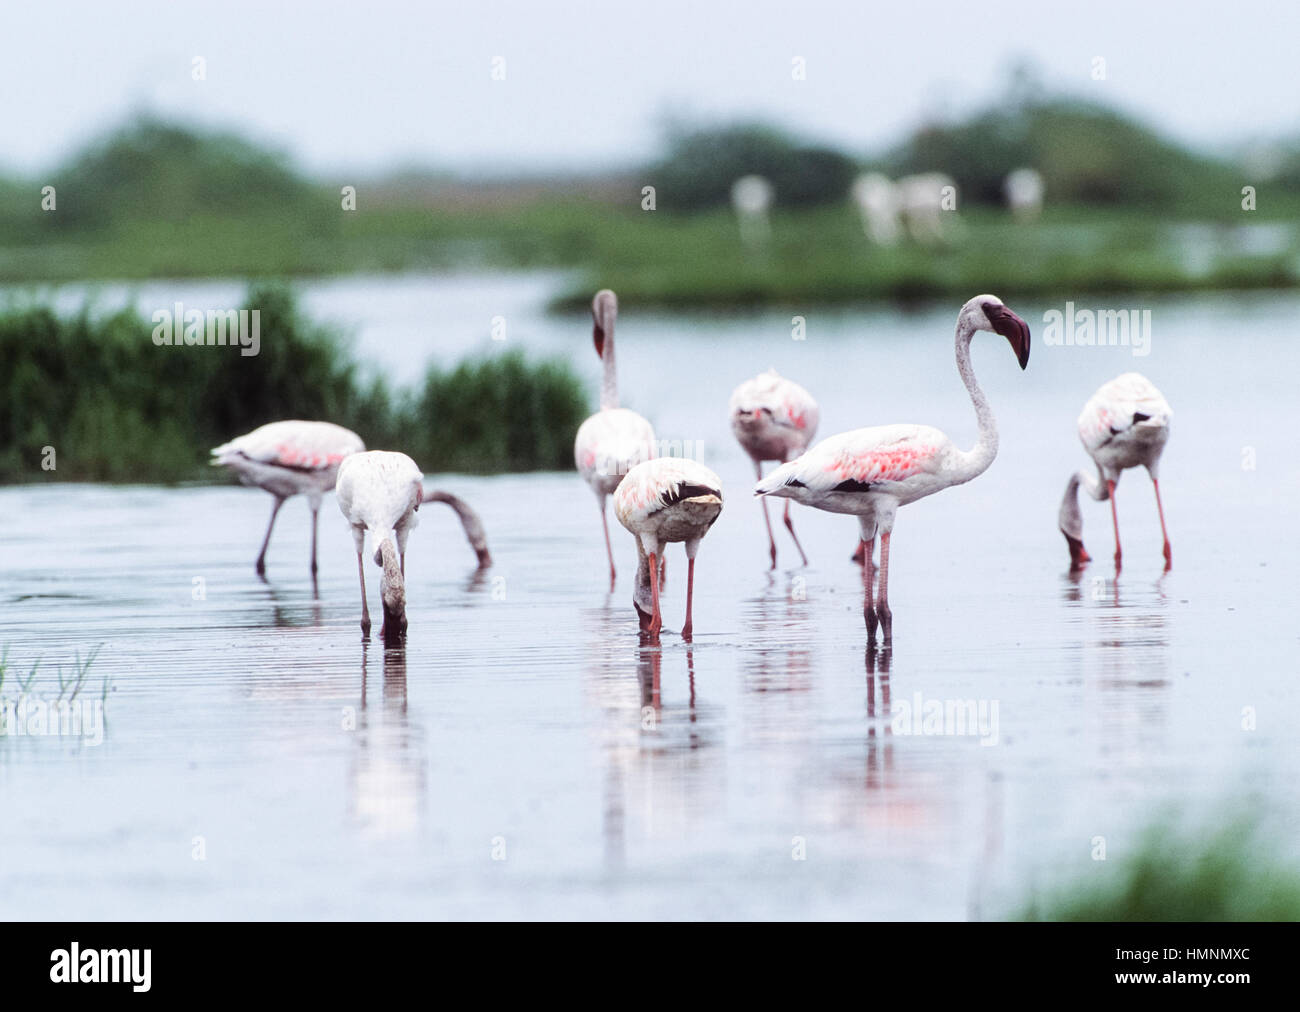 Greater flamingo,(Phoenicopterus roseus), Velavadar National Park,Velavadar,Gujarat, India - Stock Image